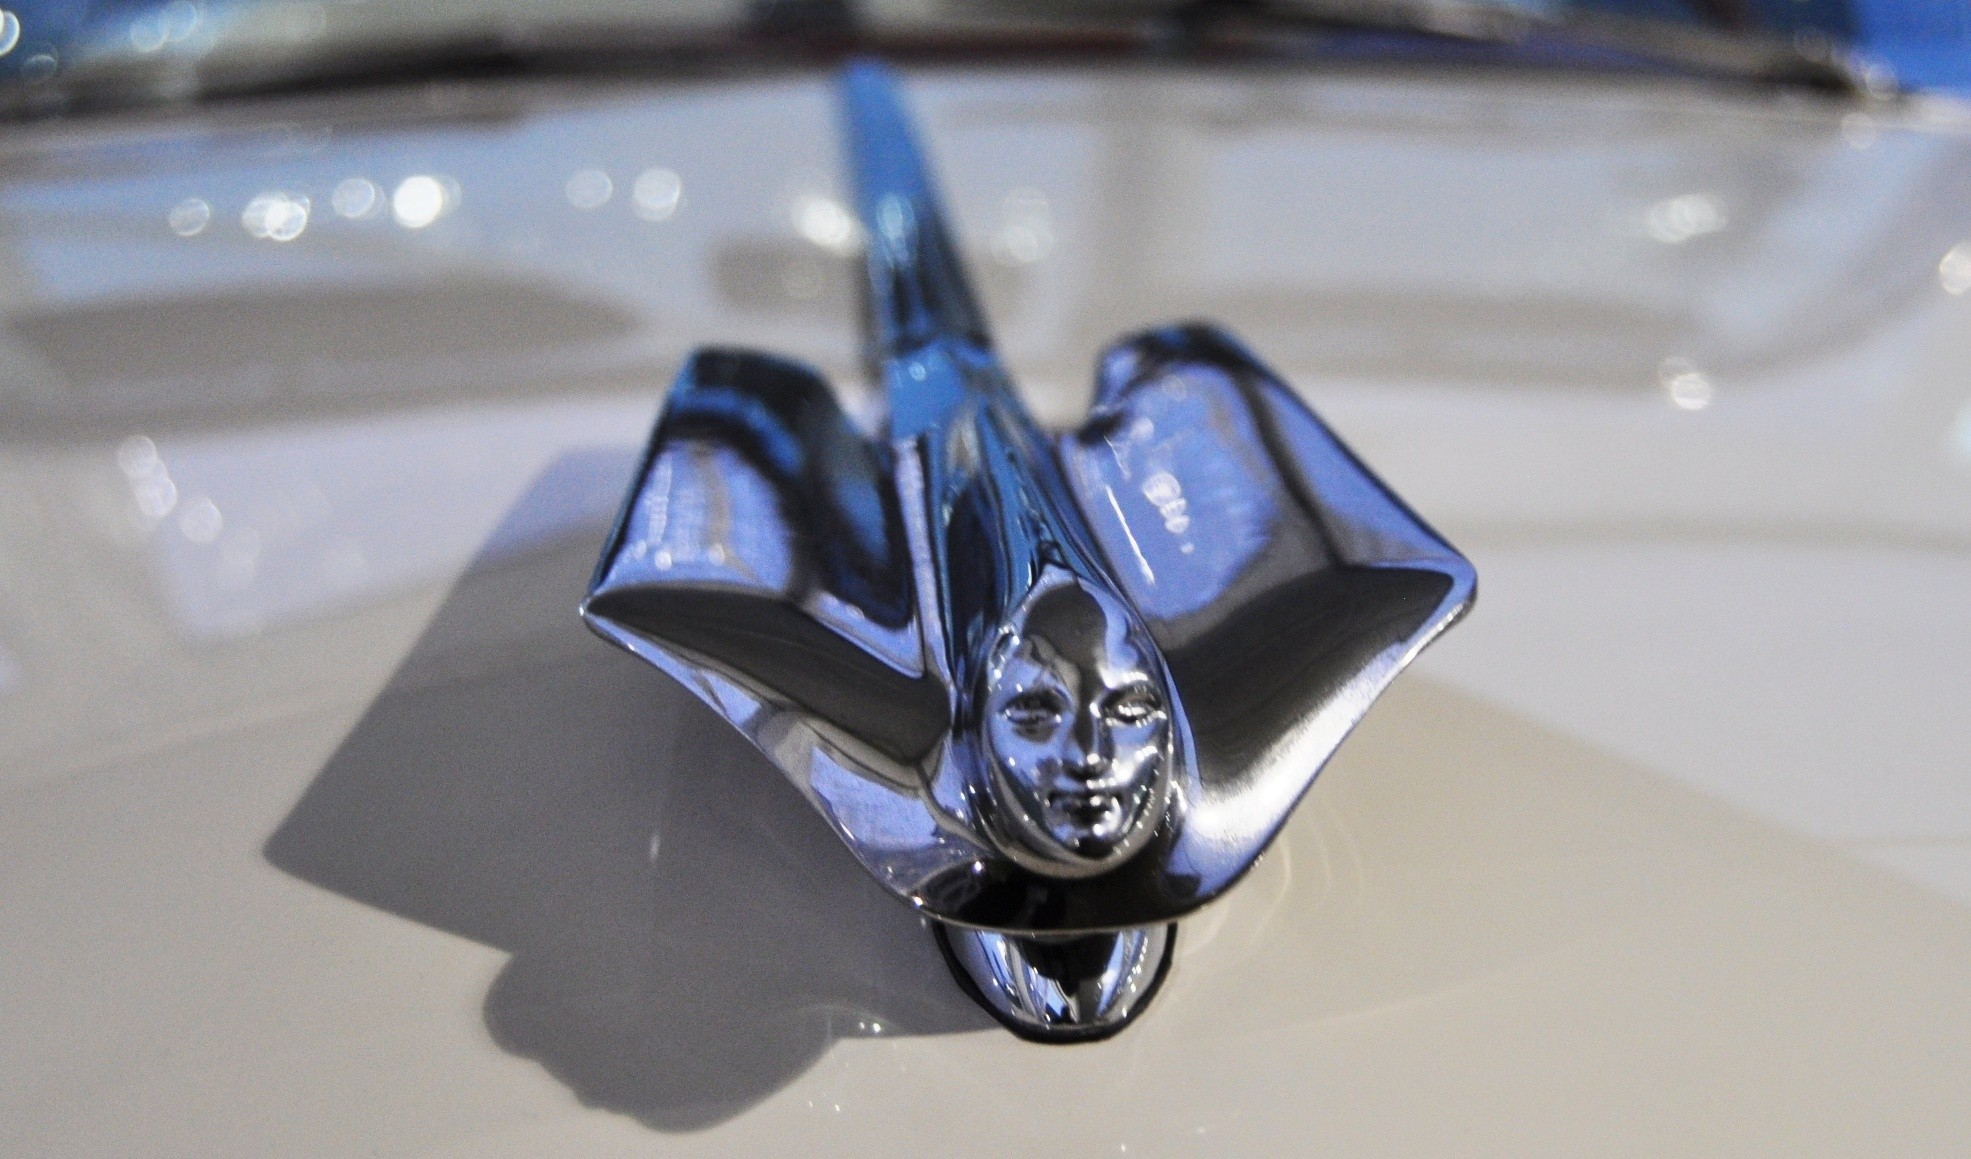 Coolest Vintage Hood Ornaments -- RM Auctions Amelia Island 2014 -- Pierce-Arrow, Cadillac, Stutz, Chrysler, Ford, Aston-Martin, Bentley and More 24